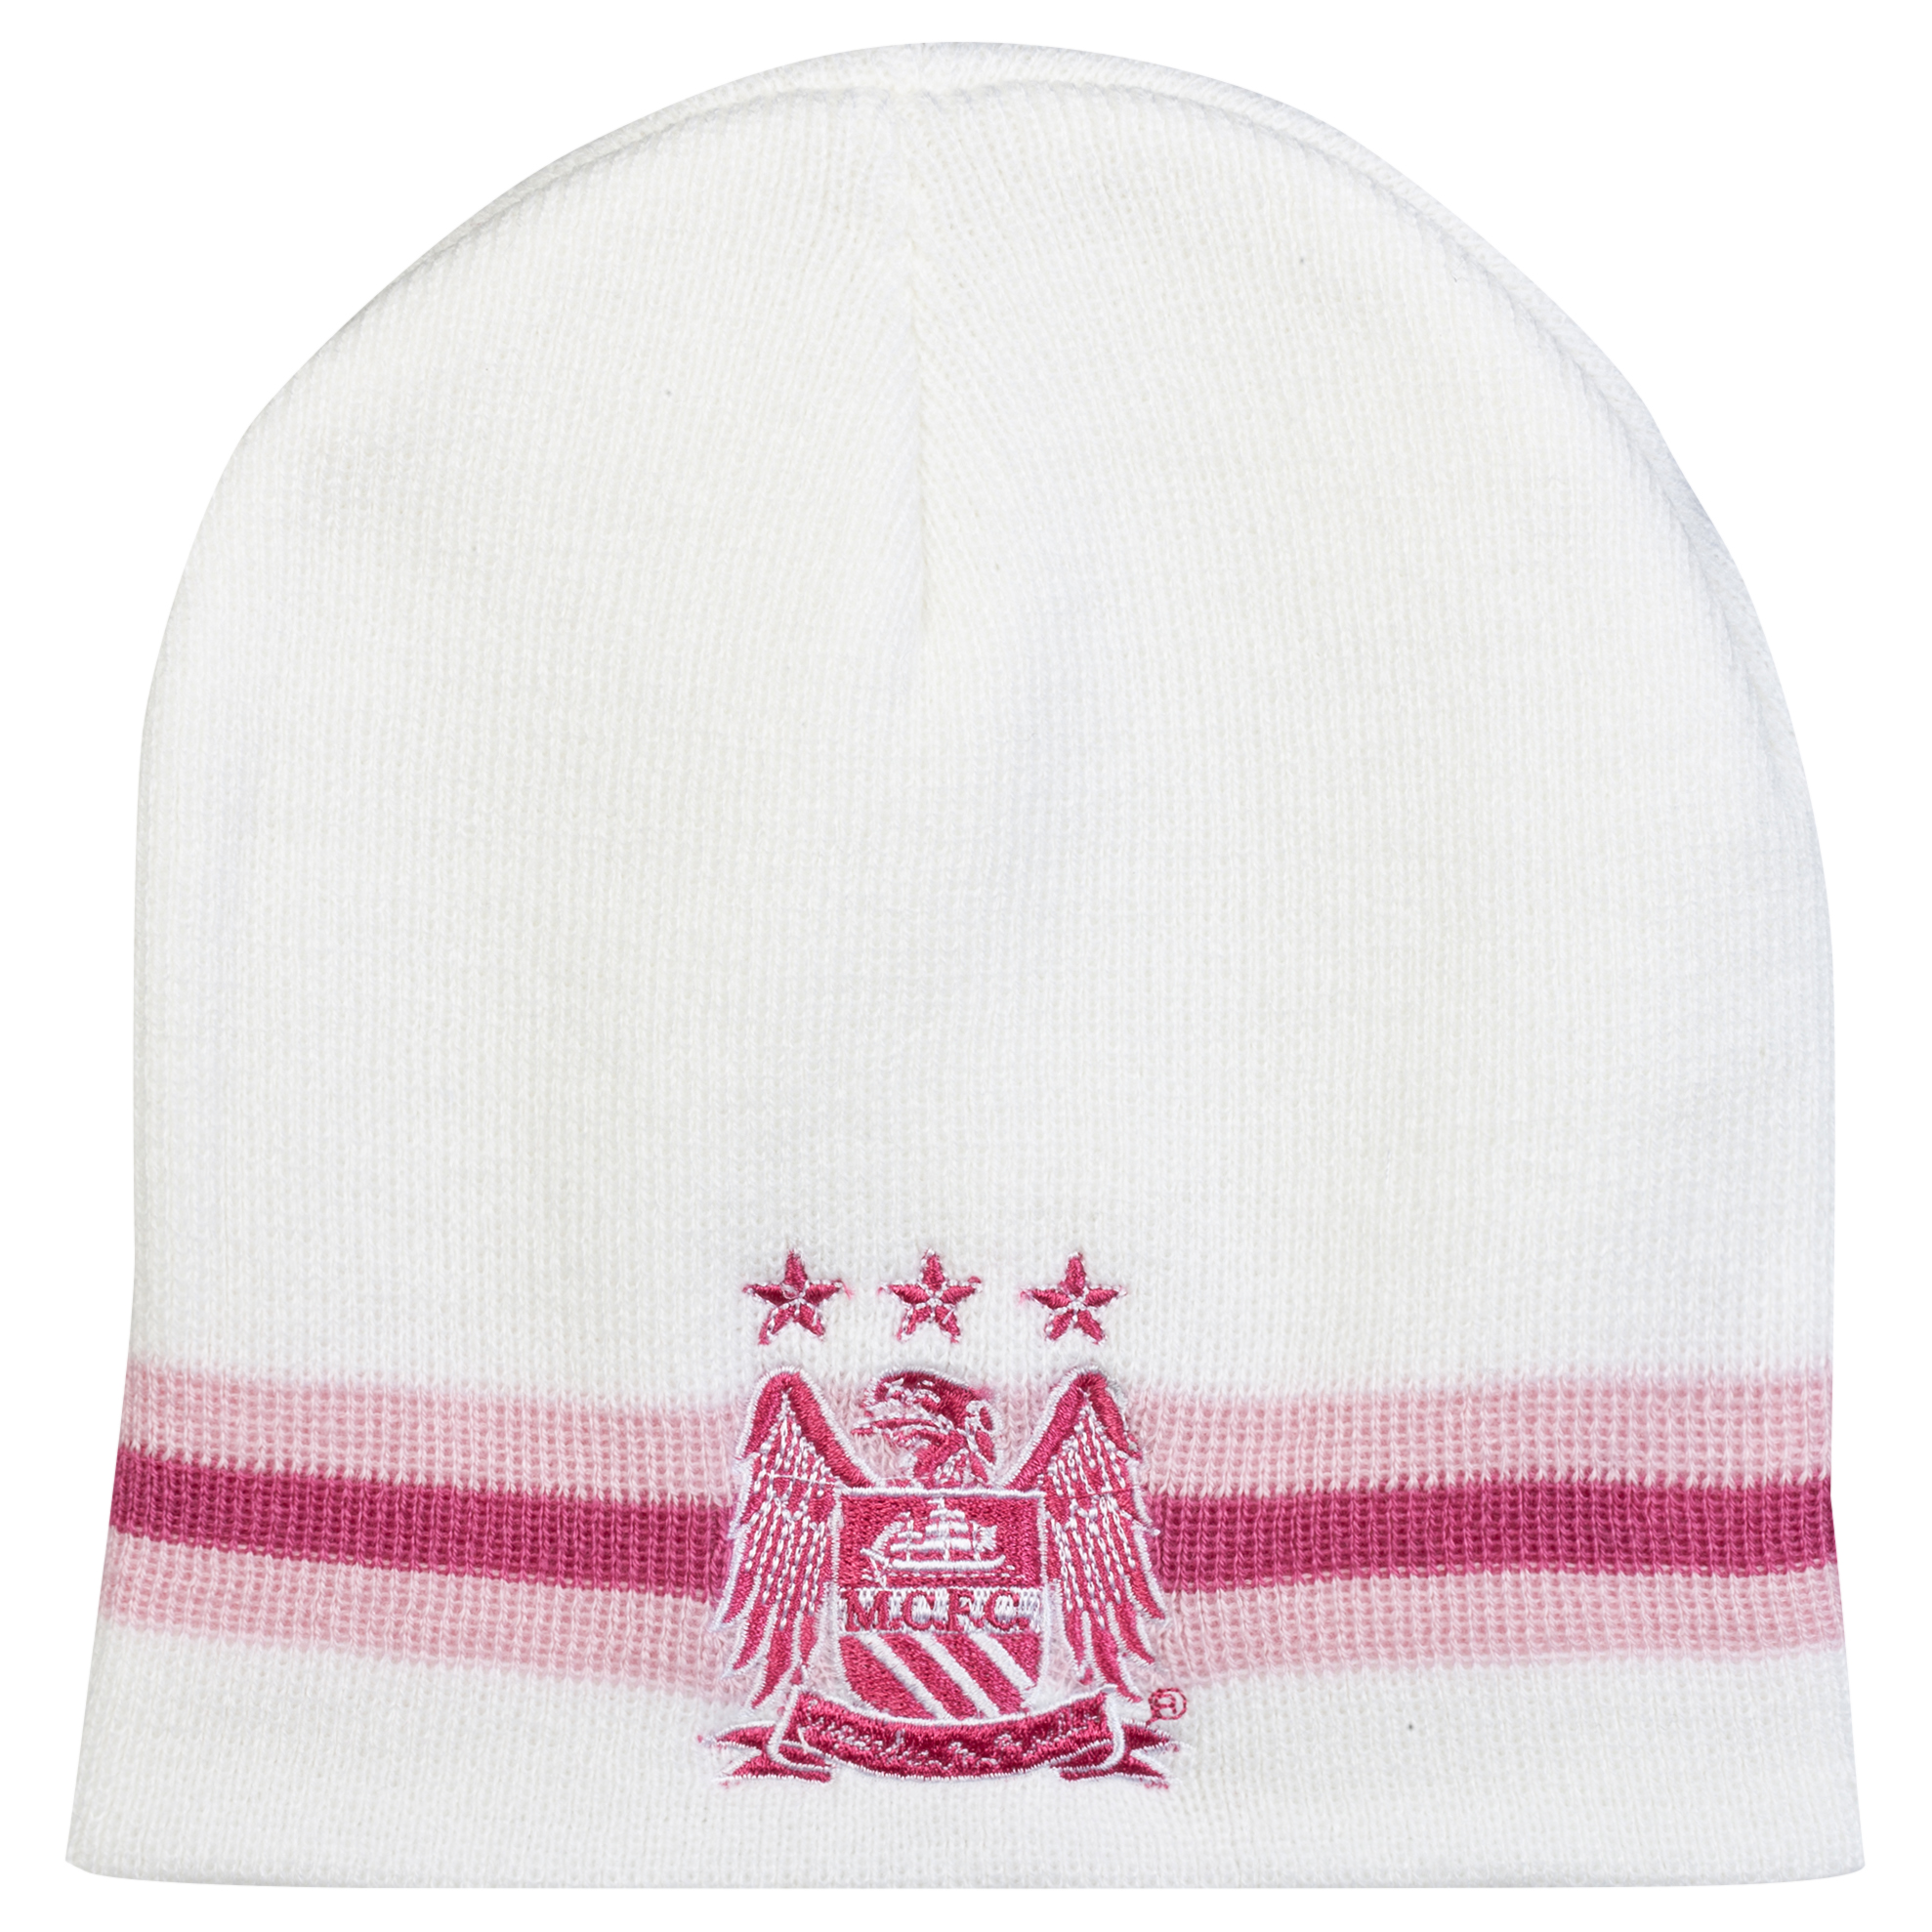 Manchester City Core Girls Beanie Hat - Pink/White